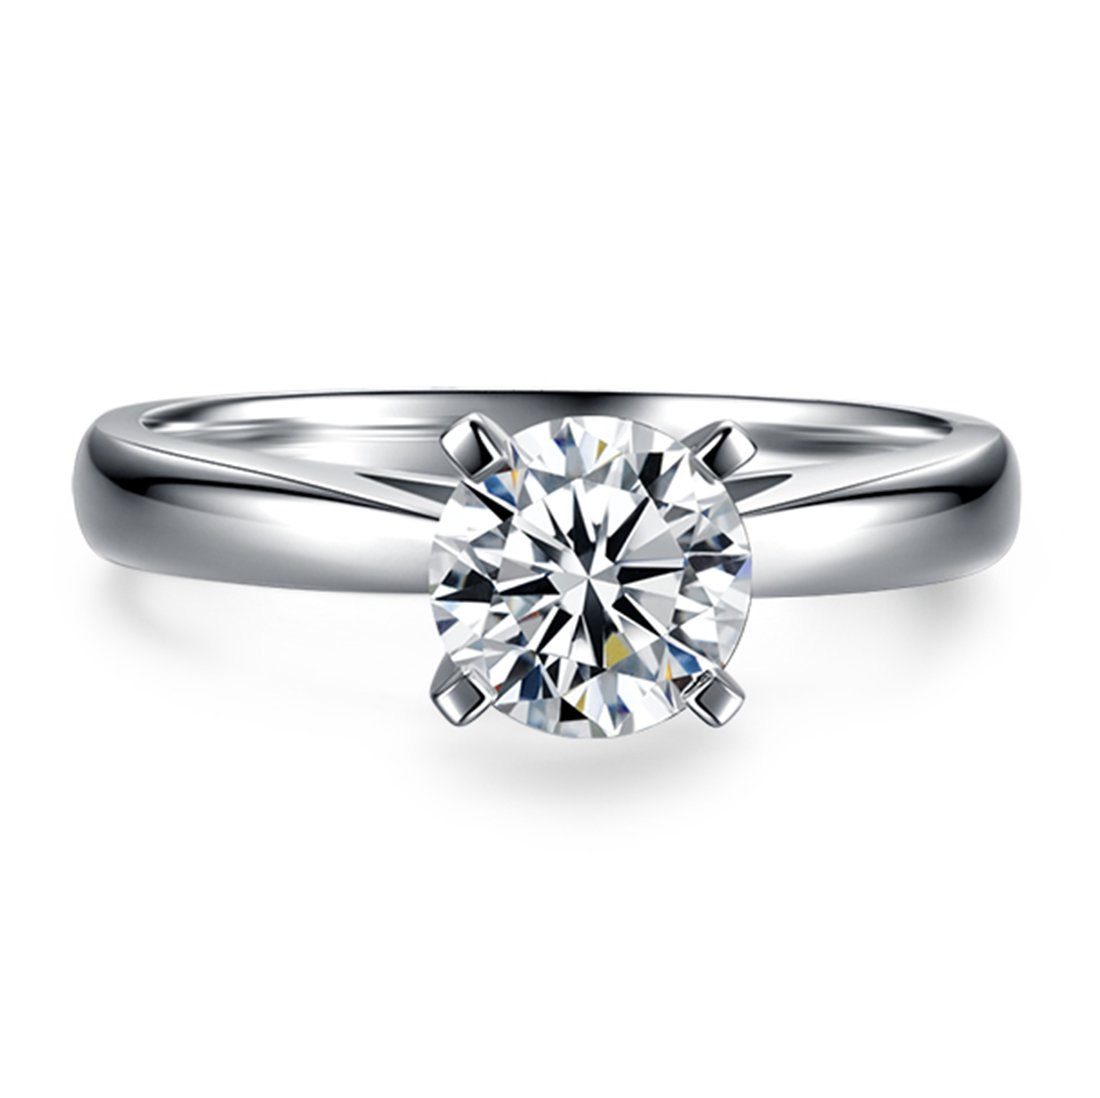 CARSINEL 1 Carat Round Brilliant CZ Sterling Silver 925 Wedding Engagement Ring Sizes 4 to 9 (9)